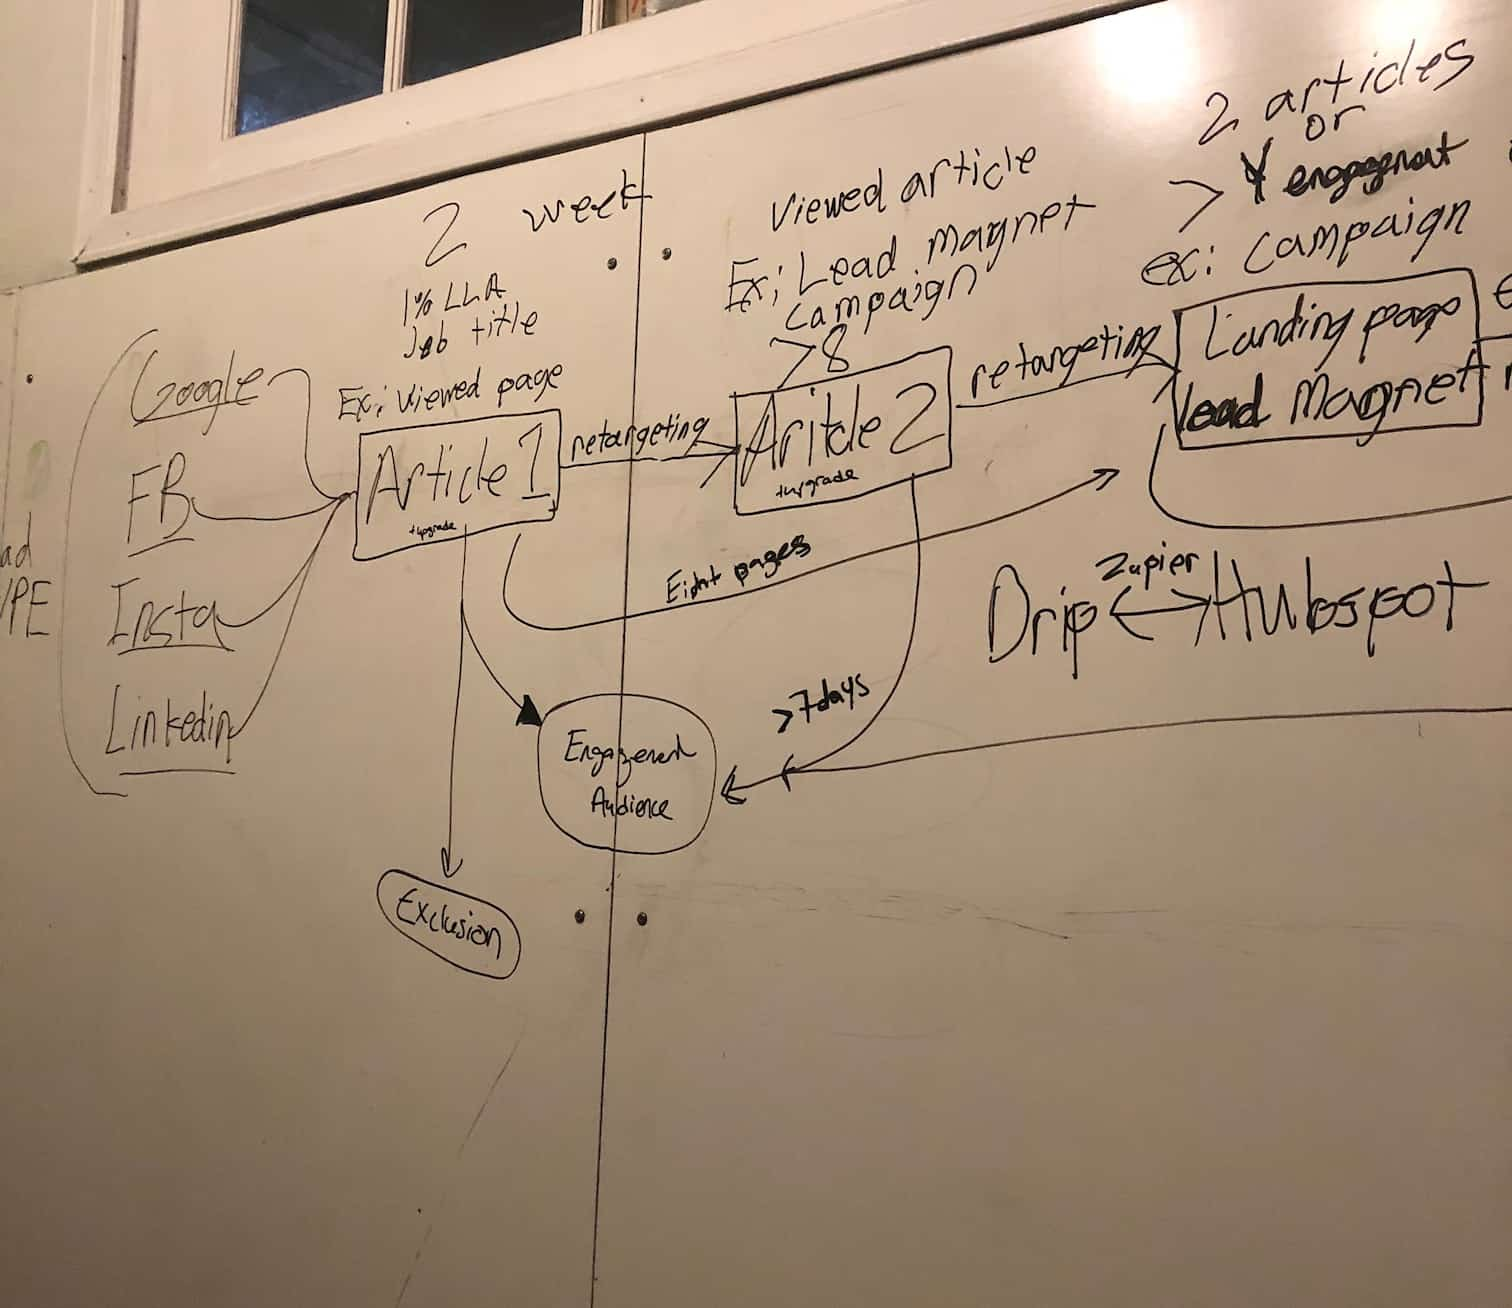 Whiteboarding an advanced lead generation and nurturing strategy